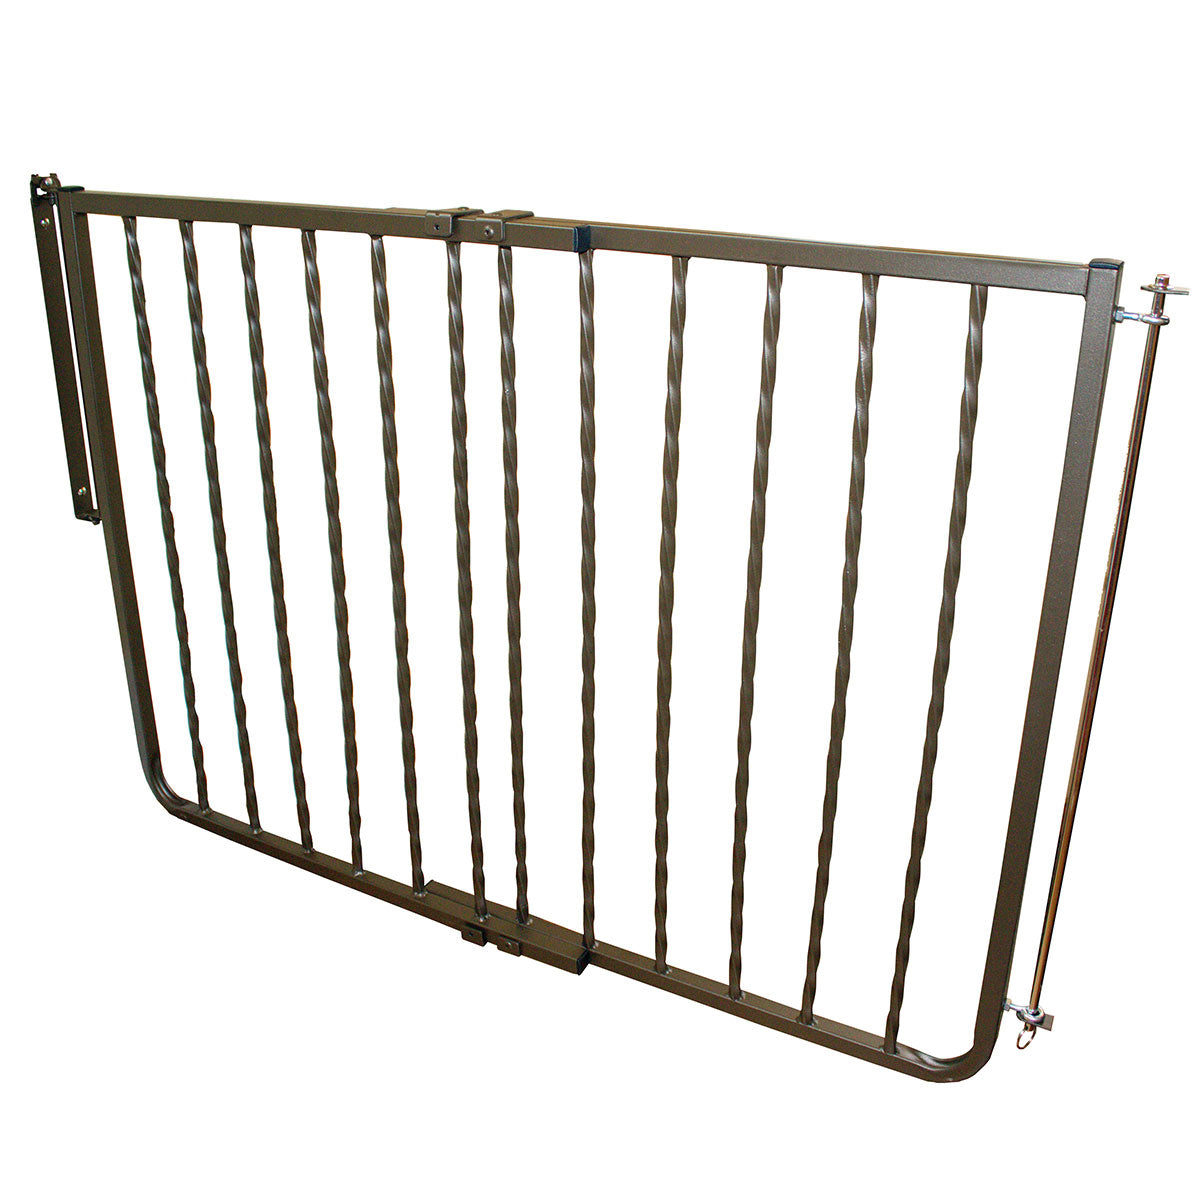 Wrought Iron Decor Hardware Mounted Pet Gate - Johnny's Pet Supply